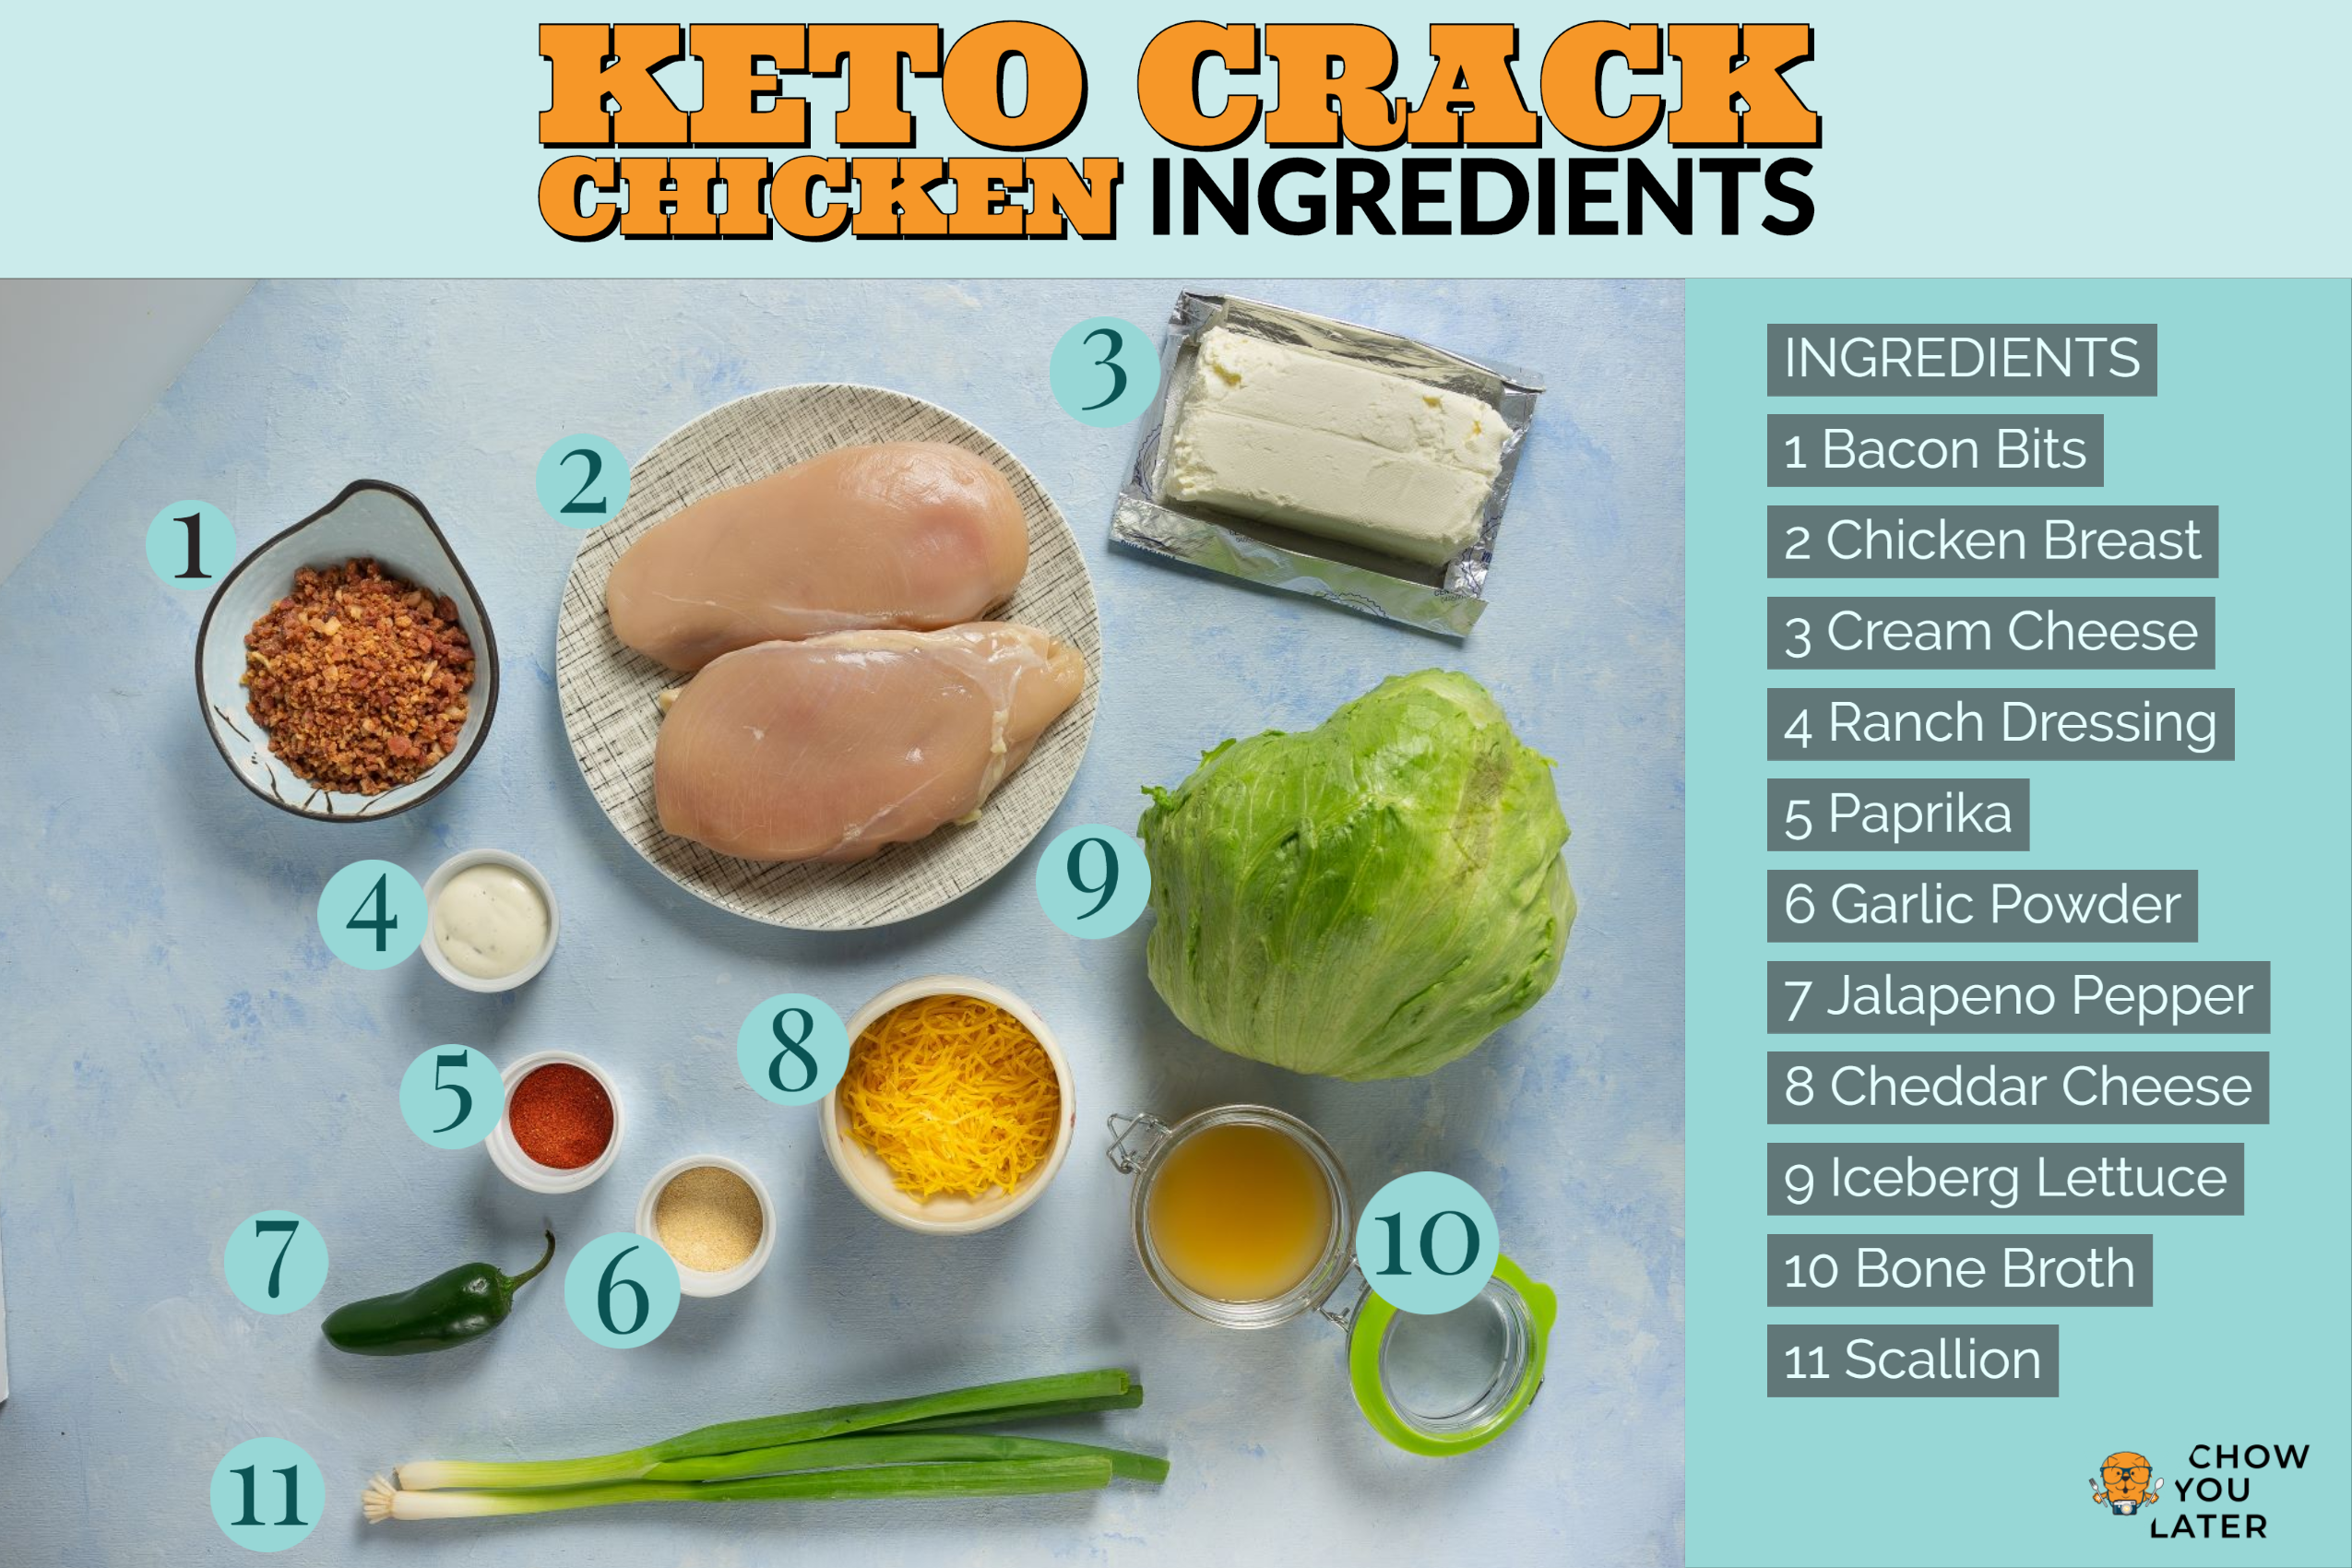 Keto Crack Chicken ingredients laid out on blue flat surface